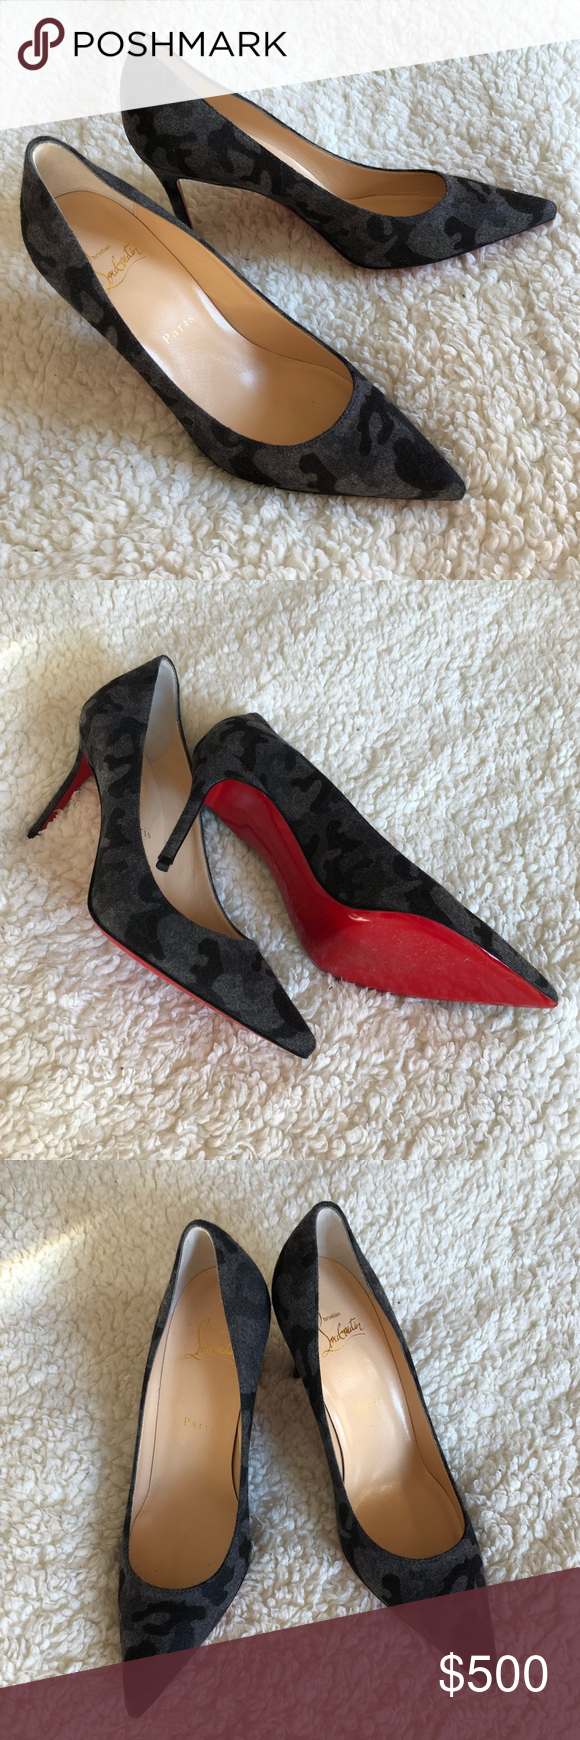 sports shoes cebda 1c2e7 CHRISTIAN LOUBOUTIN Décolleté 554 85mm size 37.5 AUTHENTIC ...